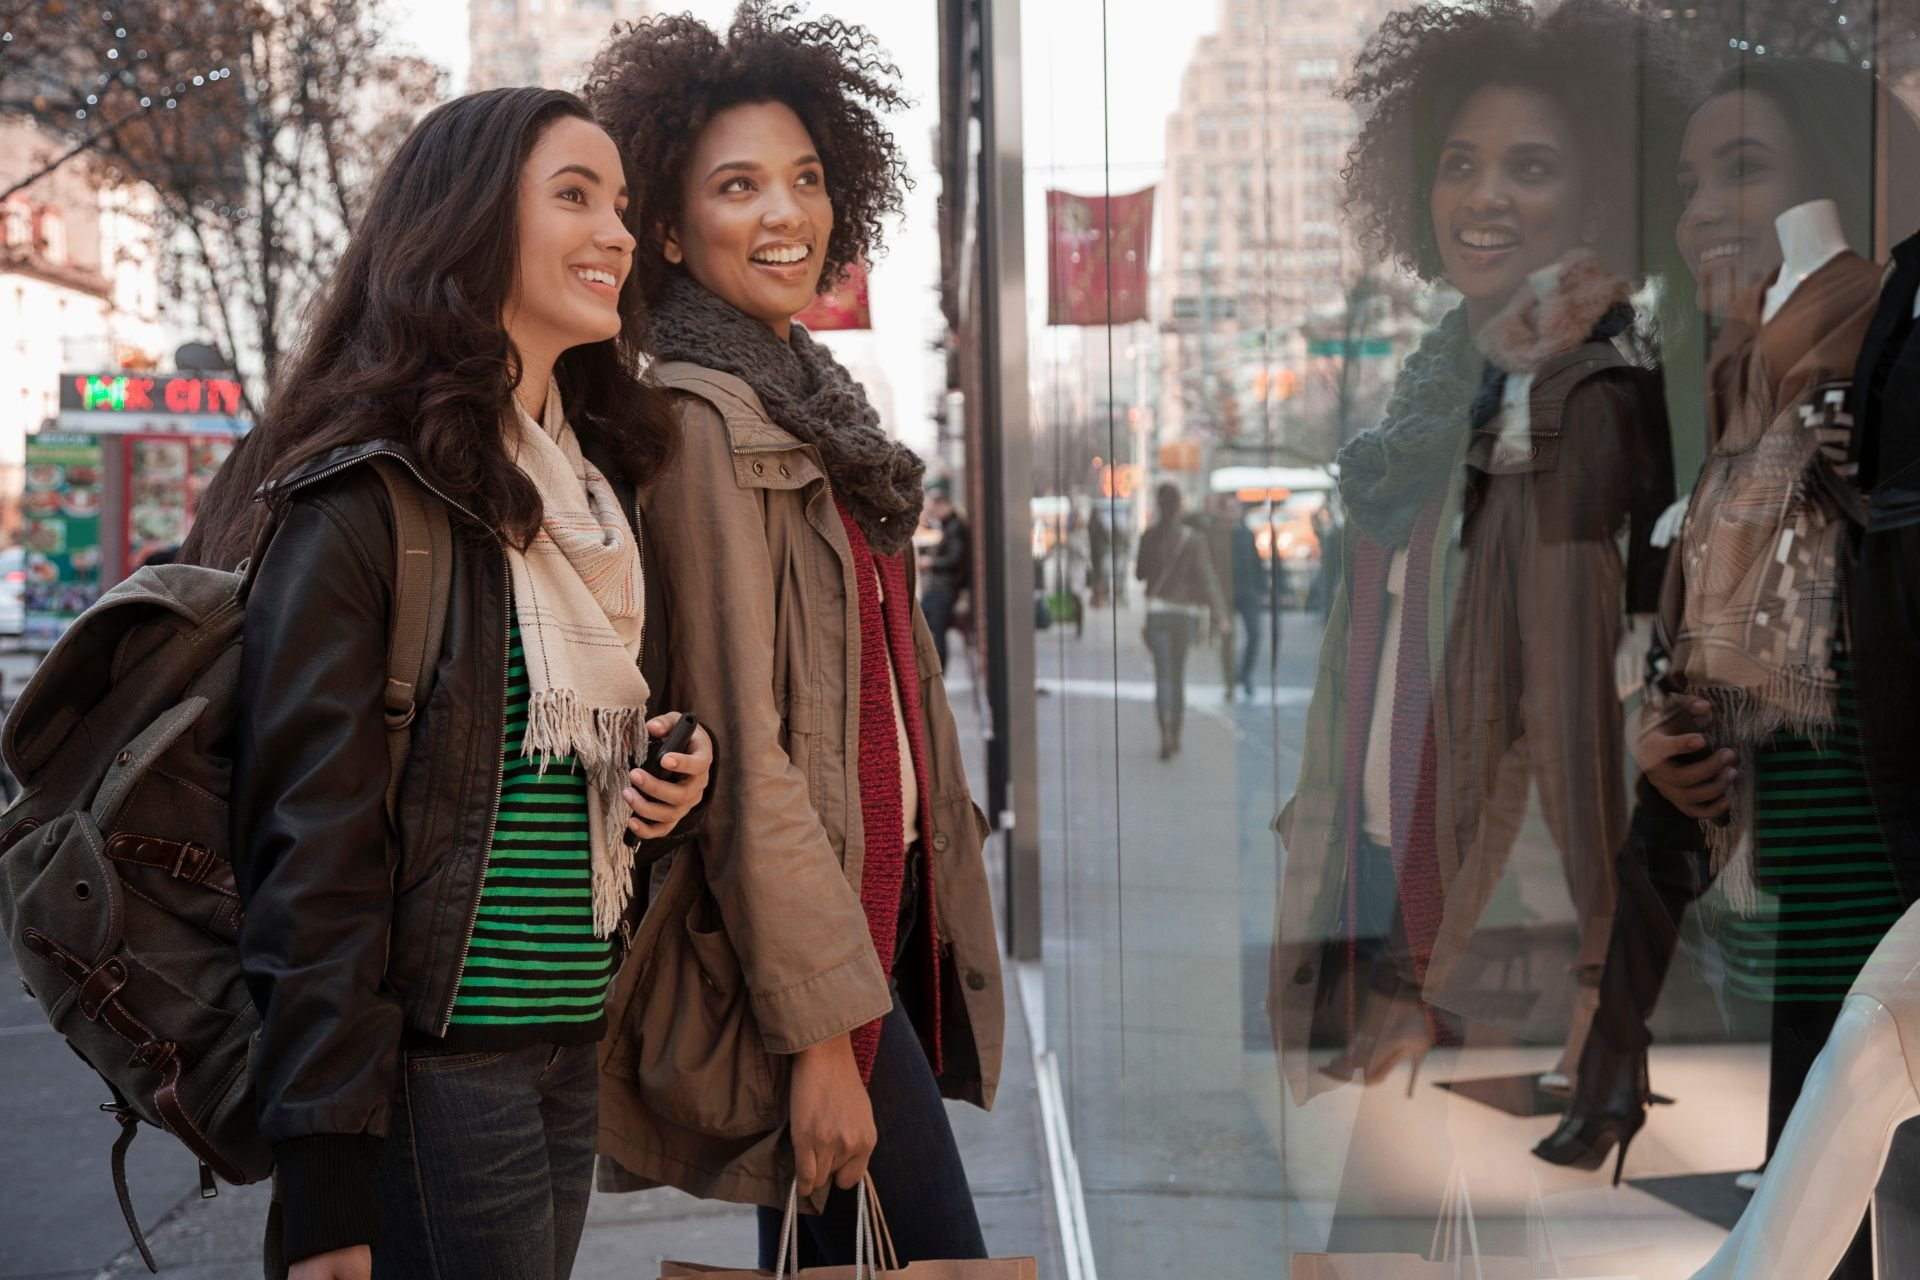 Boston Seaport Shopping Dining Recreation and Nightlife-VIA Seaport Residences